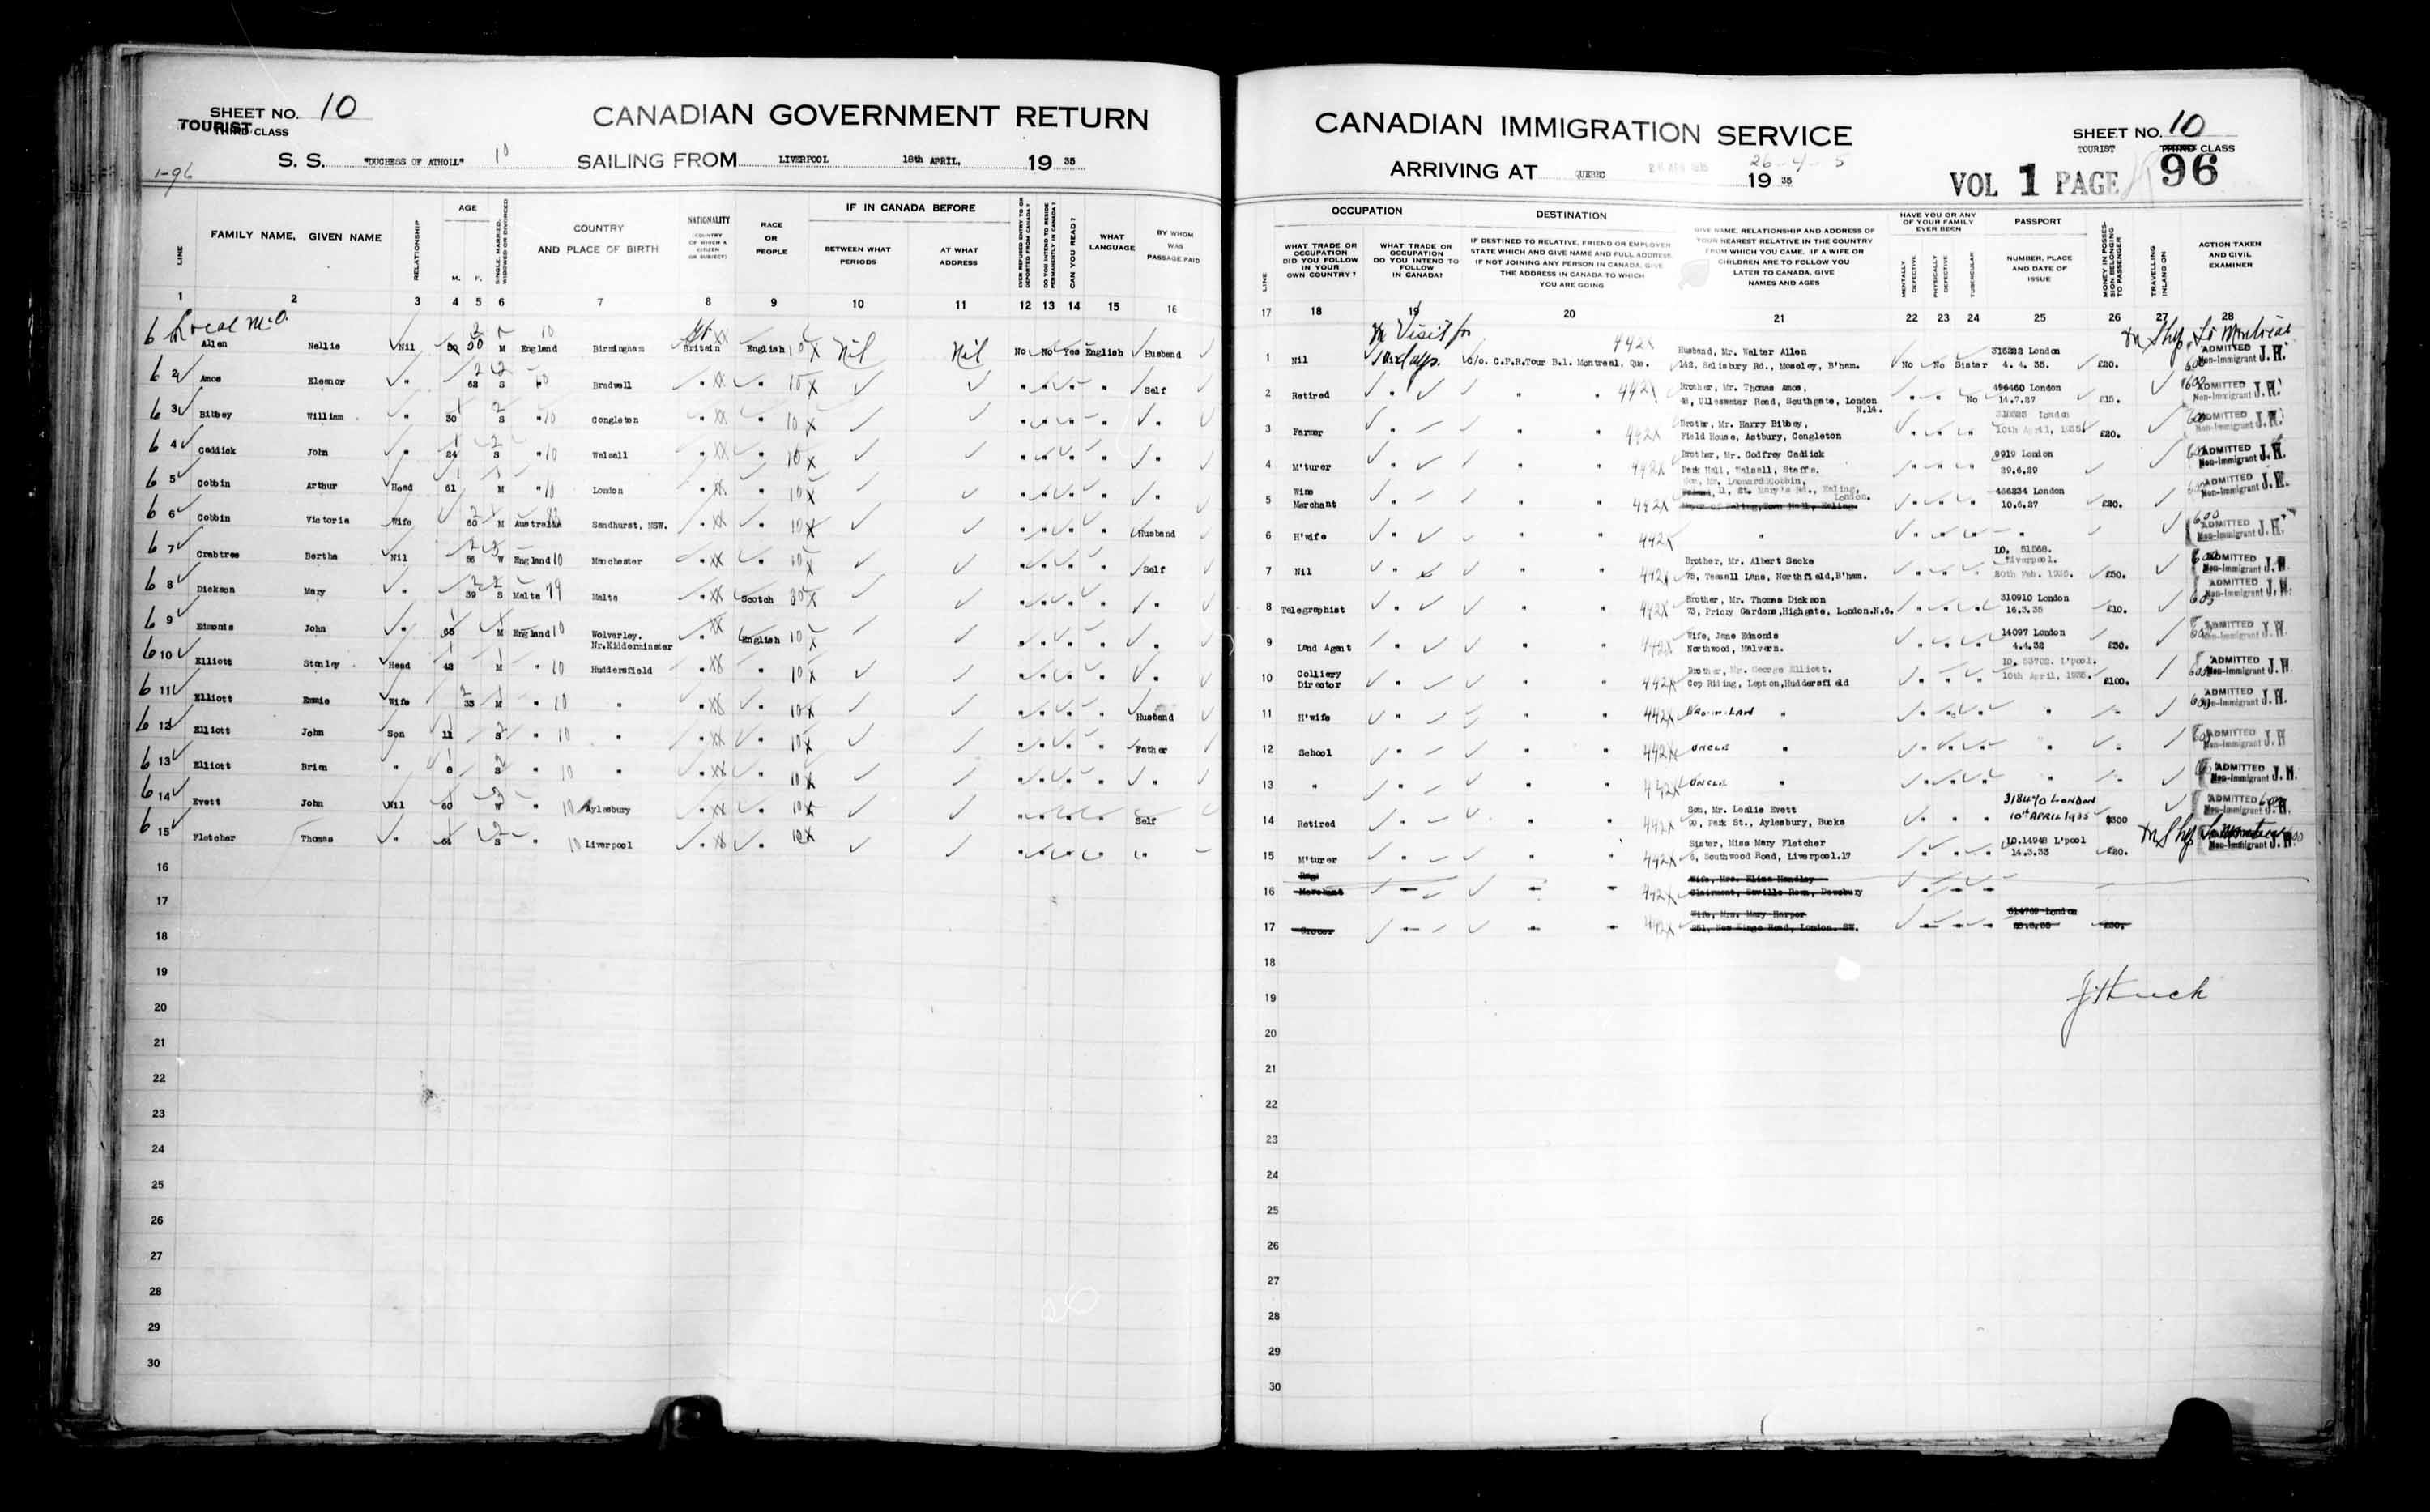 Title: Passenger Lists: Quebec City (1925-1935) - Mikan Number: 134839 - Microform: t-14790